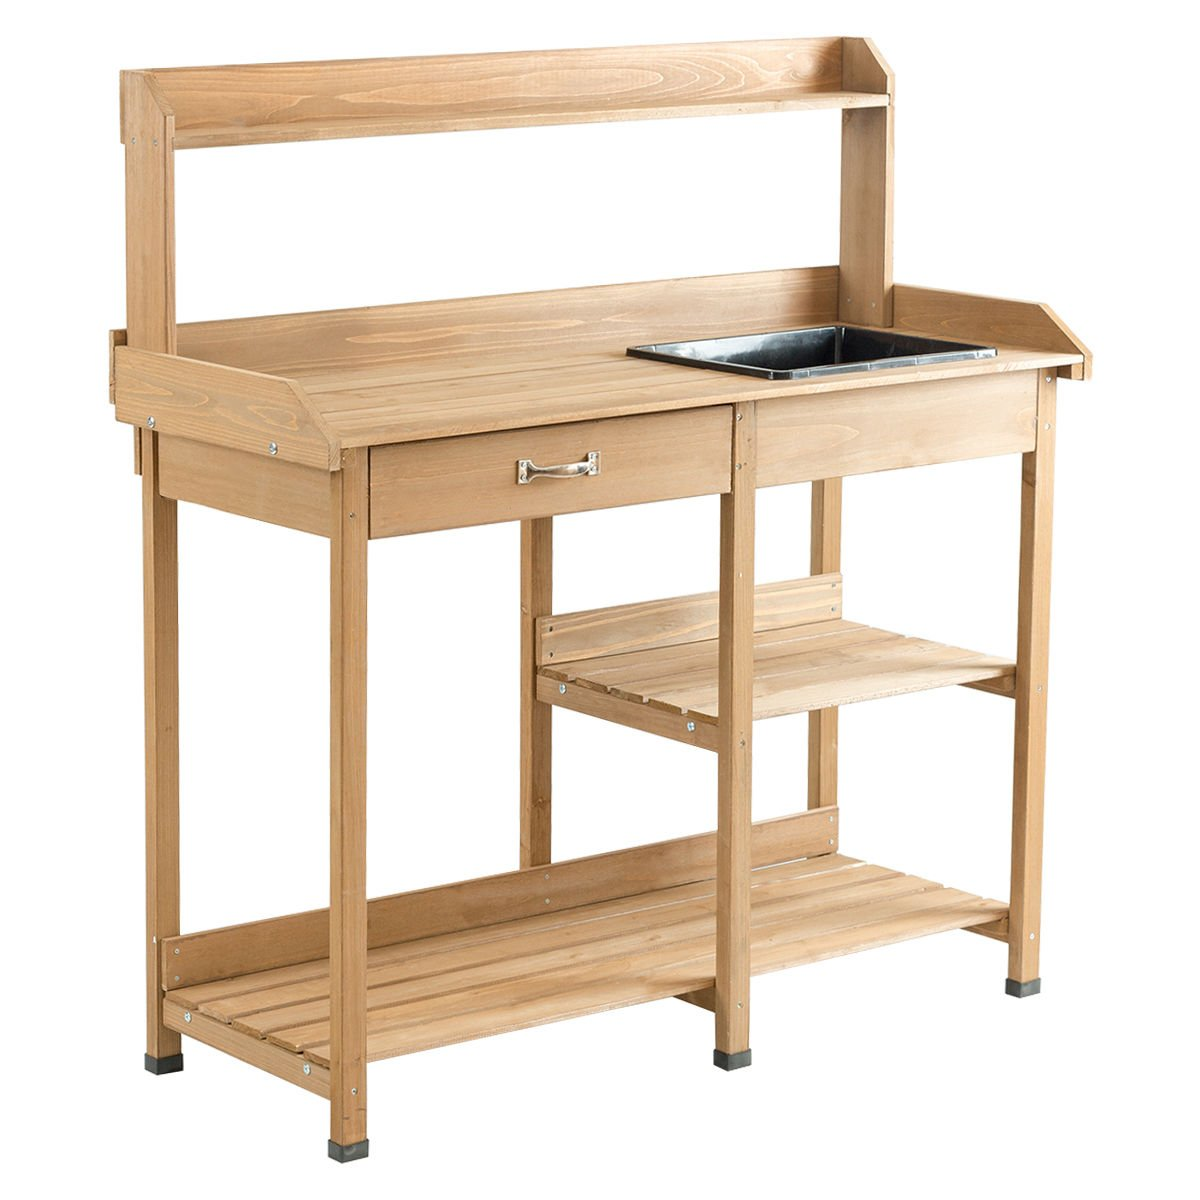 Giantex Potting Table Bench Outdoor Indoor Work Station Garden Planting Wood Shelves by Giantex (Image #1)